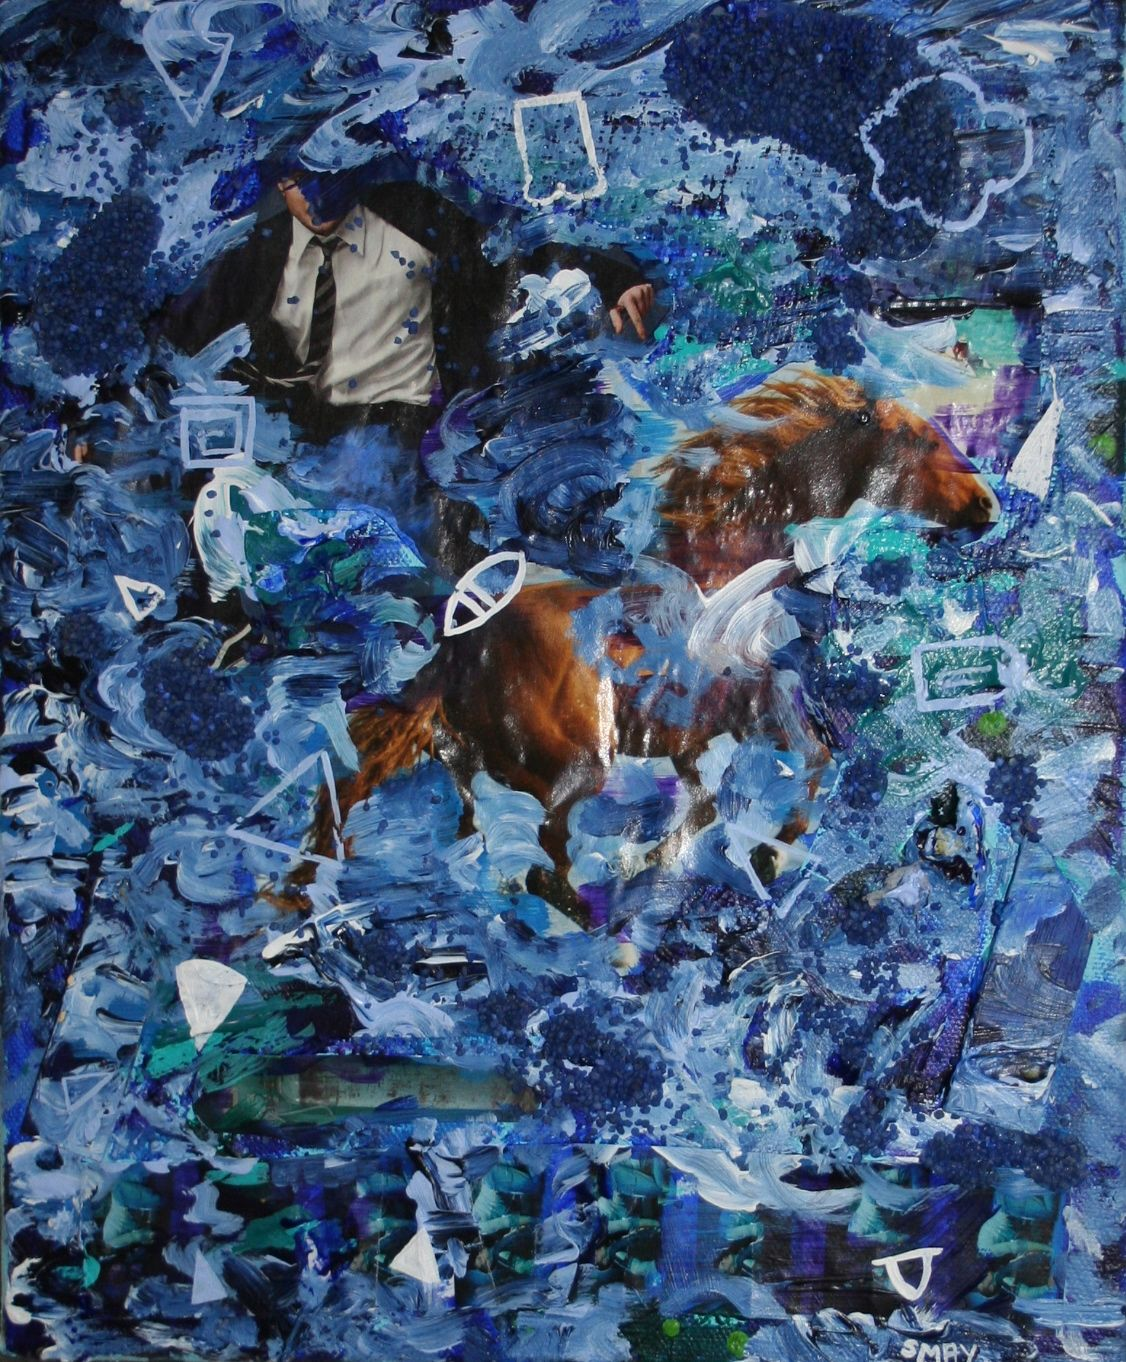 Blue triptych - Riding the waves  2012 Mixed media on canvas 25 x 30cm